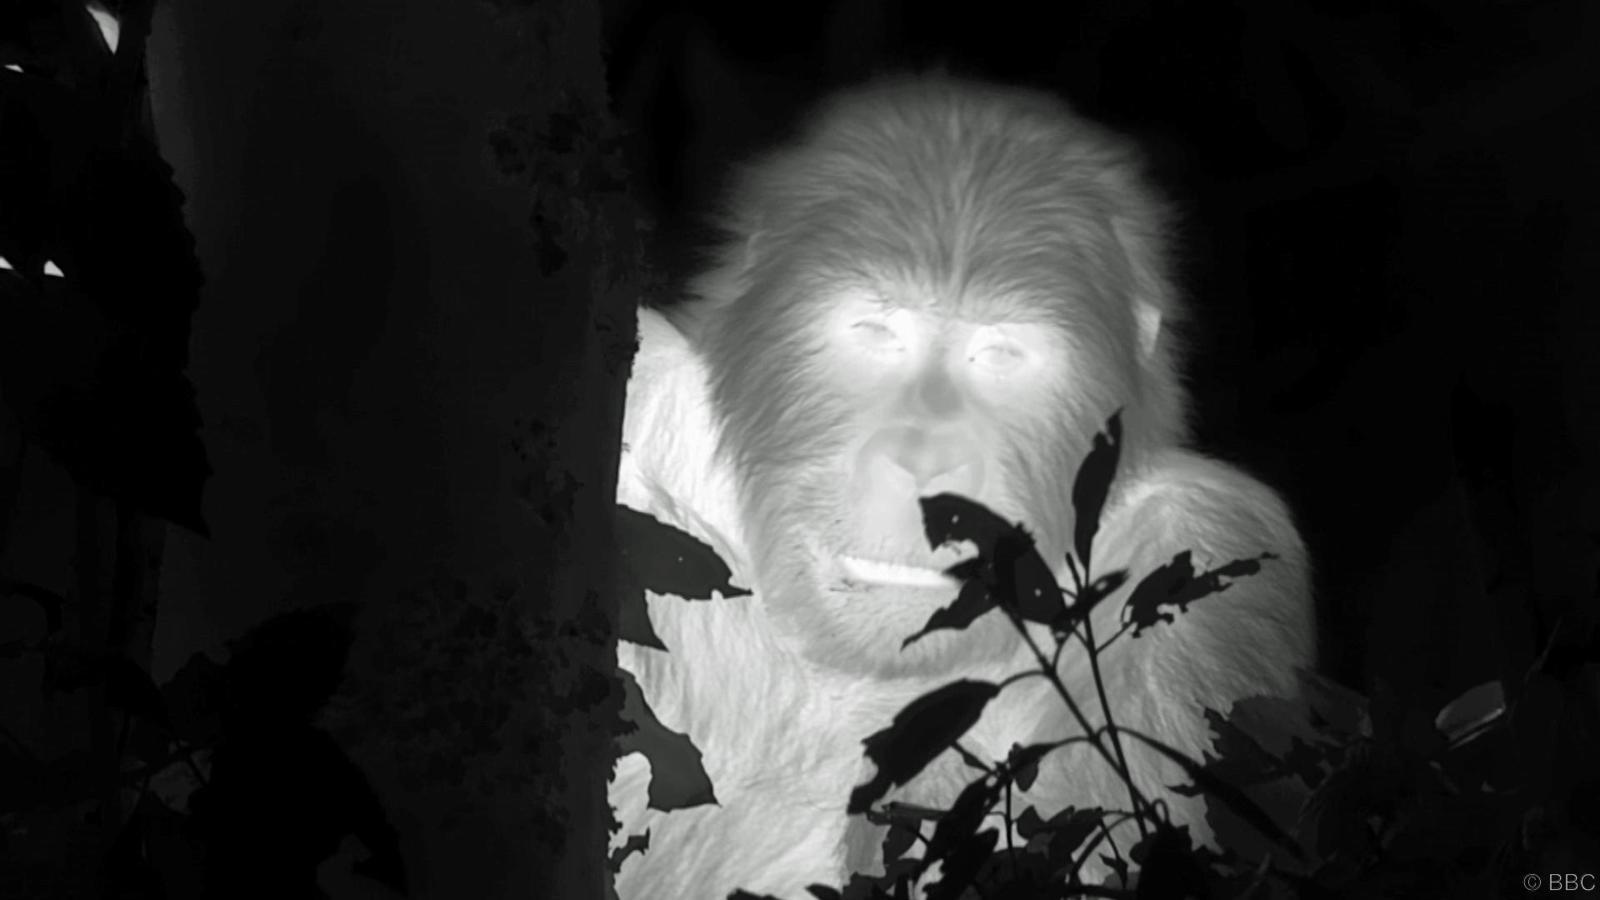 """To the best of my knowledge this is the first ever filming of gorillas at night, certainly using this kind of camera,"" says primatologist and chairman of the Ape Alliance Dr Ian Redmond, a self-professed ""gorilla-holic"" who began his career as Dian Fossey's research assistant and introduced Sir David Attenborough to gorillas in the 1970s."